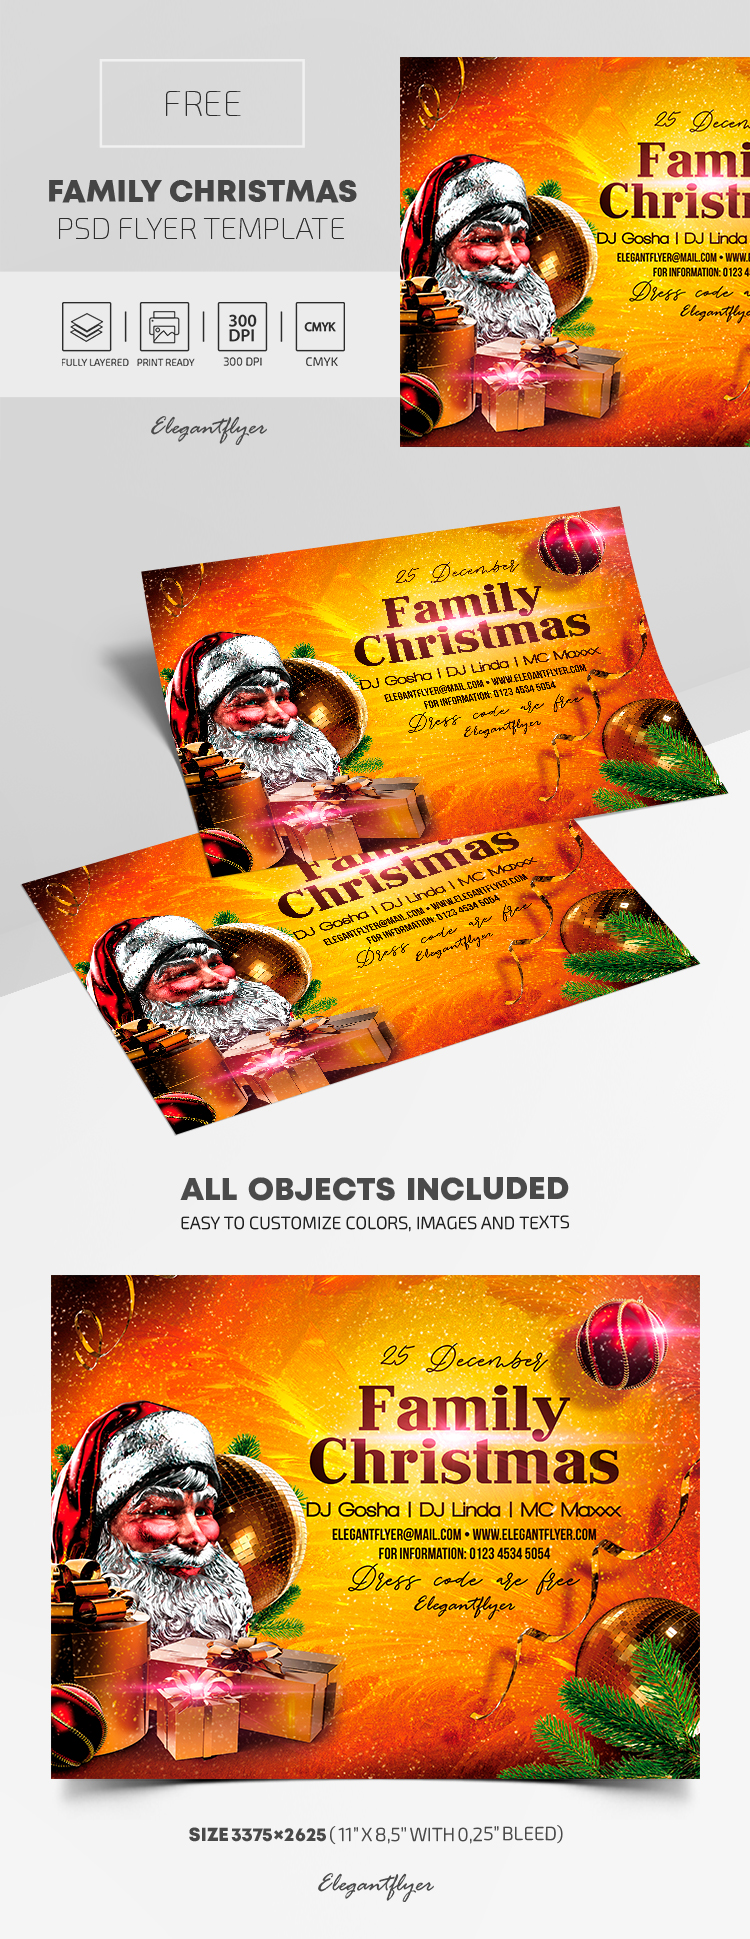 Family Christmas – Free PSD Flyer Template